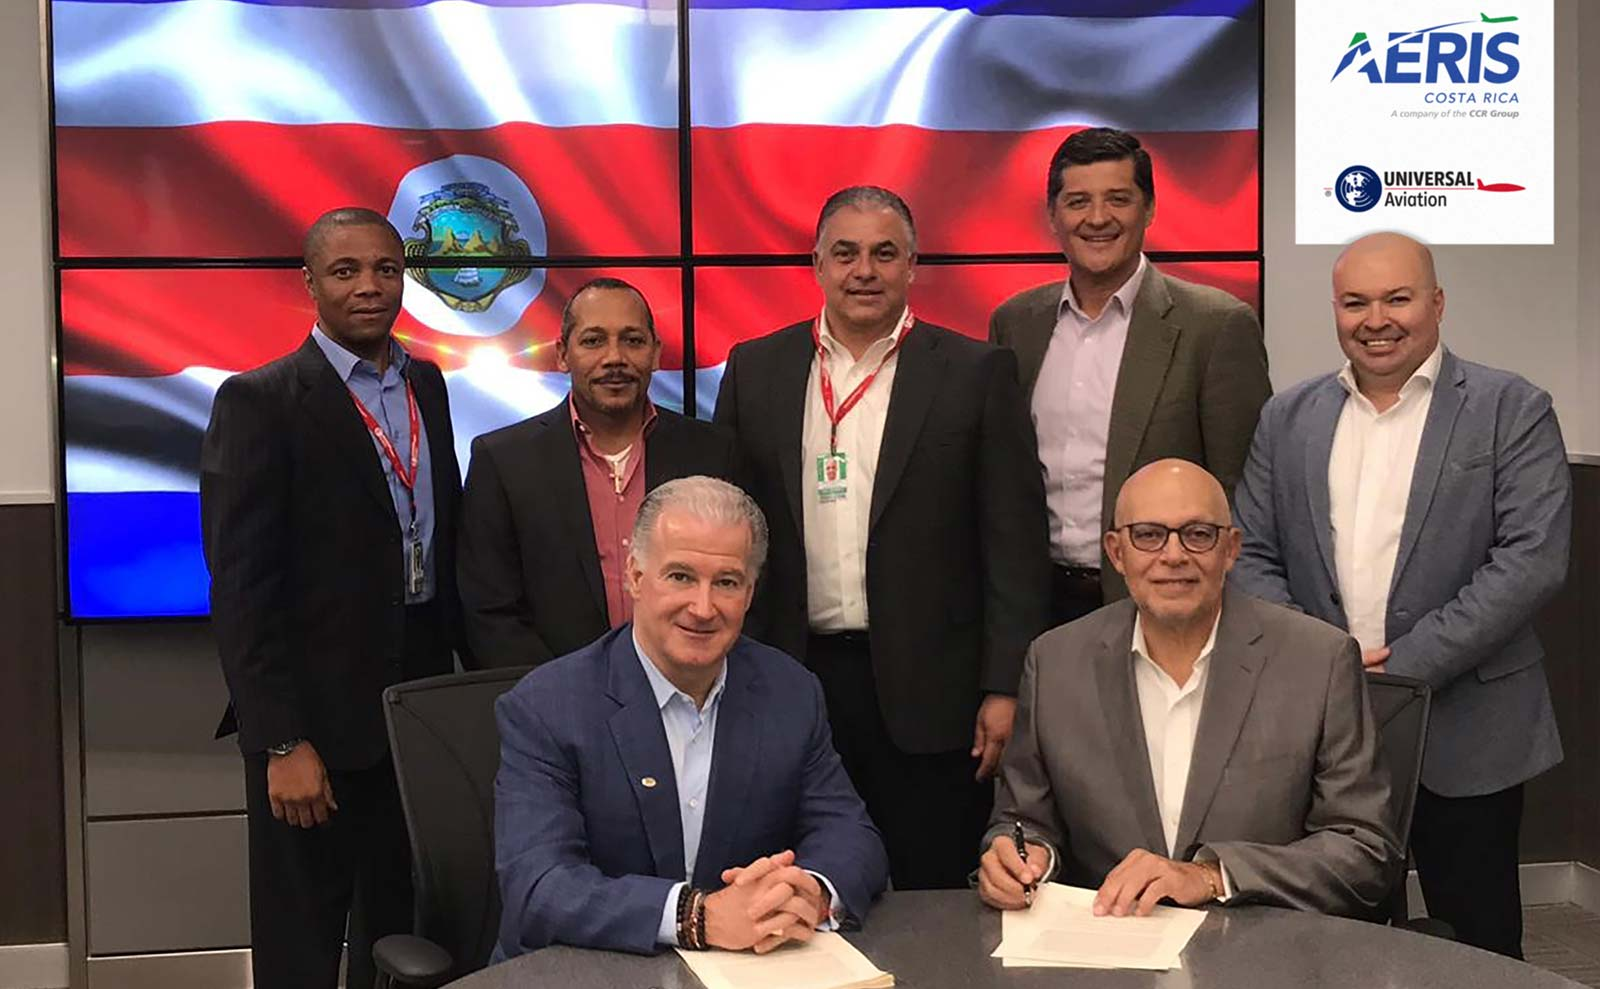 Universal Aviation part of consortium chosen to build and manage Costa Rica's first General Aviation Terminal